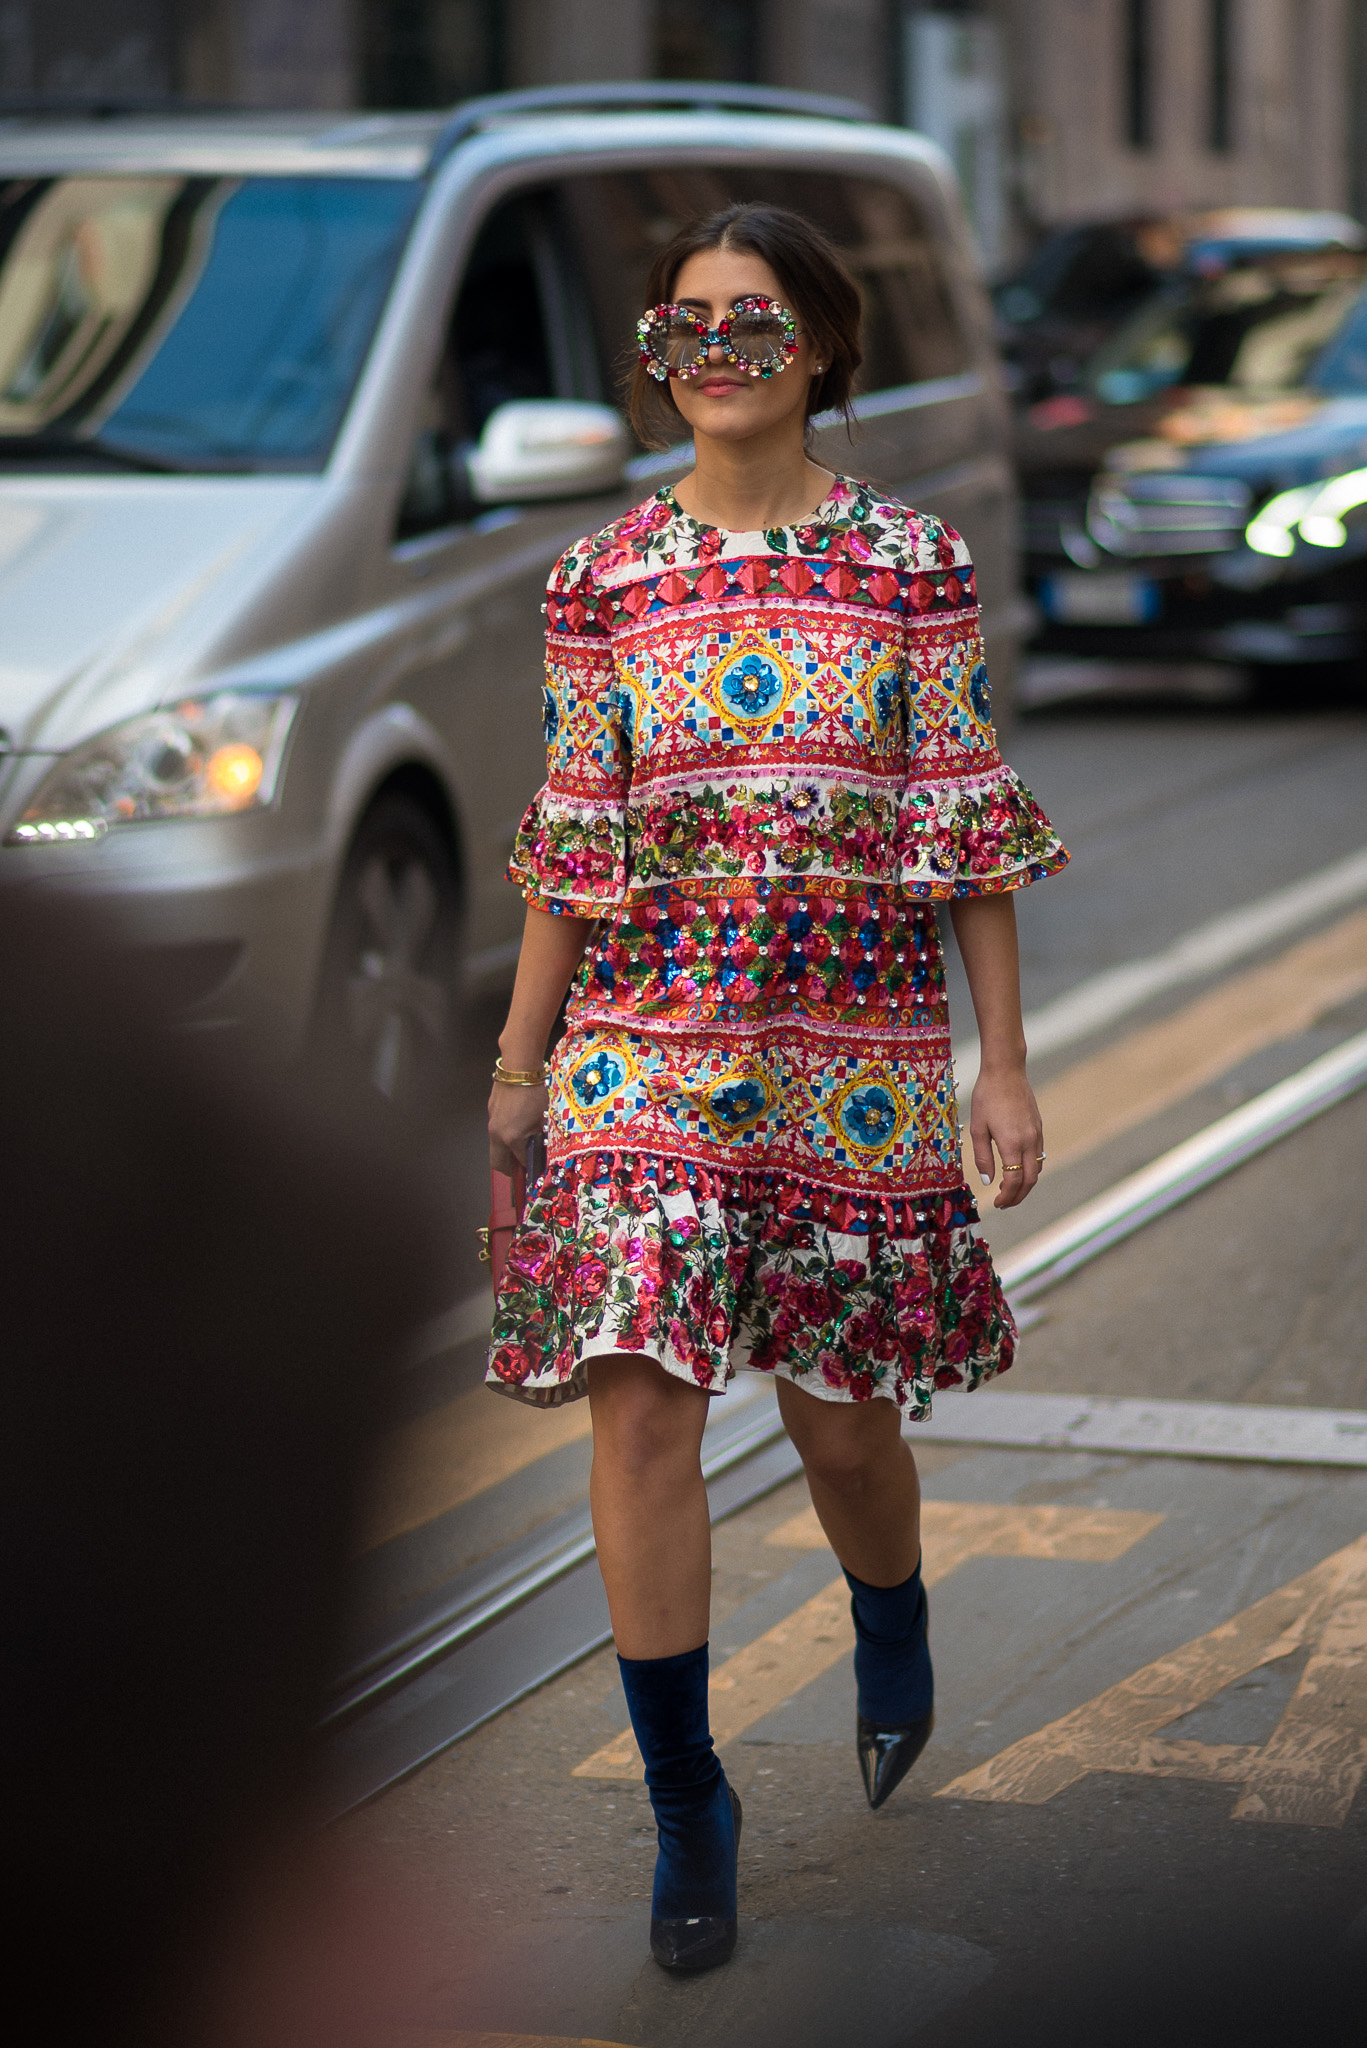 Pamela Allier_Street Style_Dolce & Gabbana_Milan Fashion Week_February 26th 2017_Photography Annika Lagerqvist_www.annikasomething.com